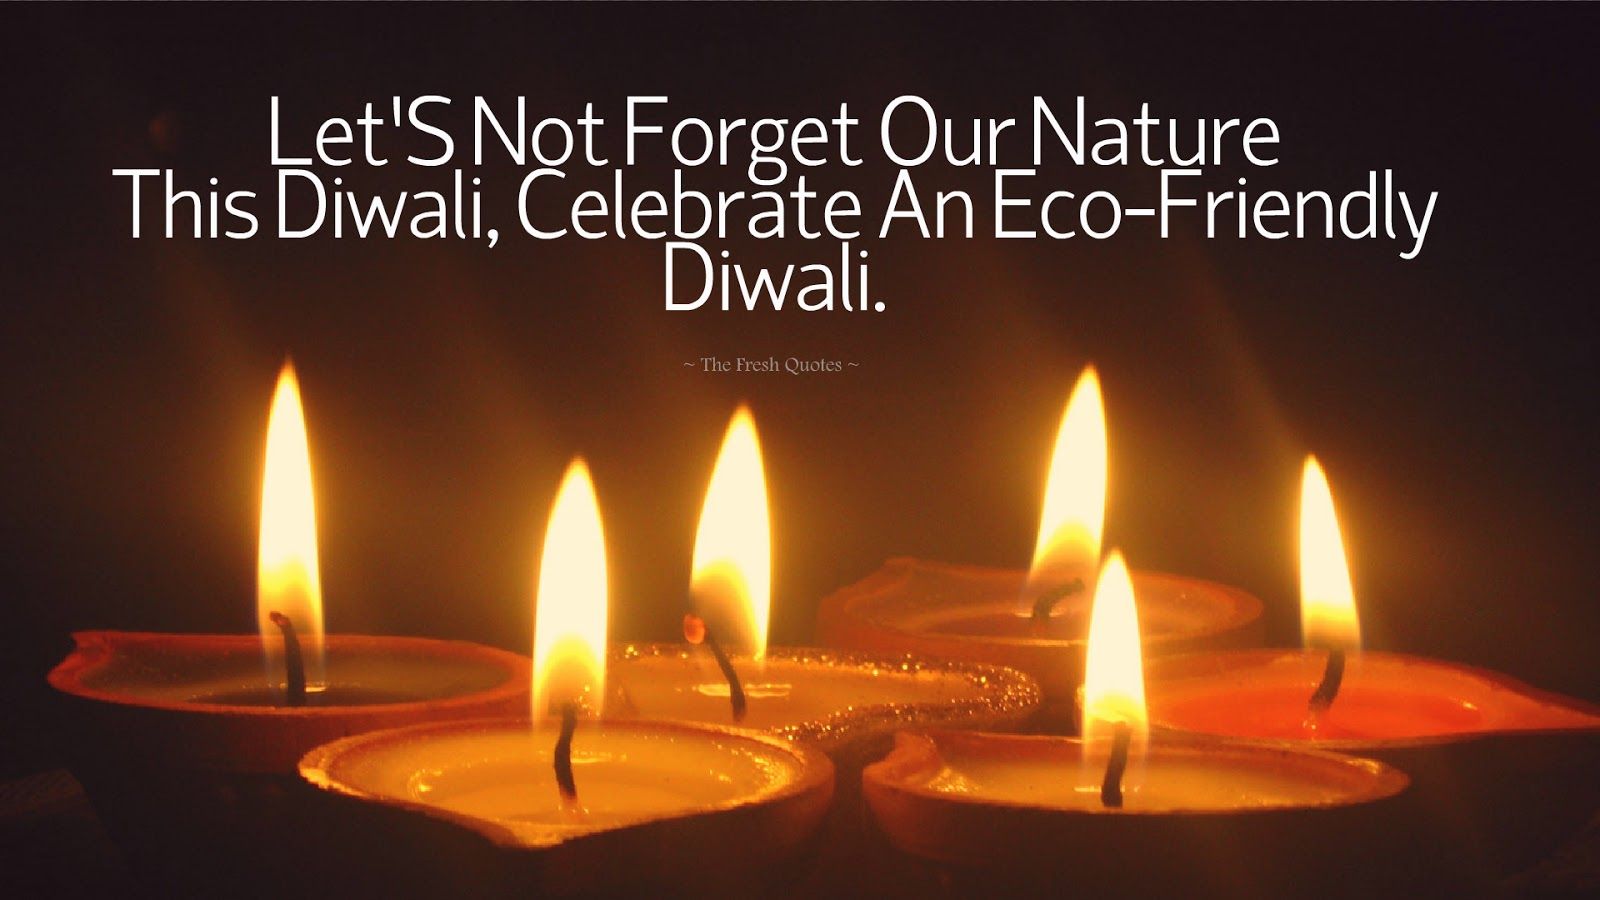 Happy diwali deepawali deepavali pictures with wishes messages happy diwali deepawali deepavali pictures with wishes messagesgreetings messages m4hsunfo Images